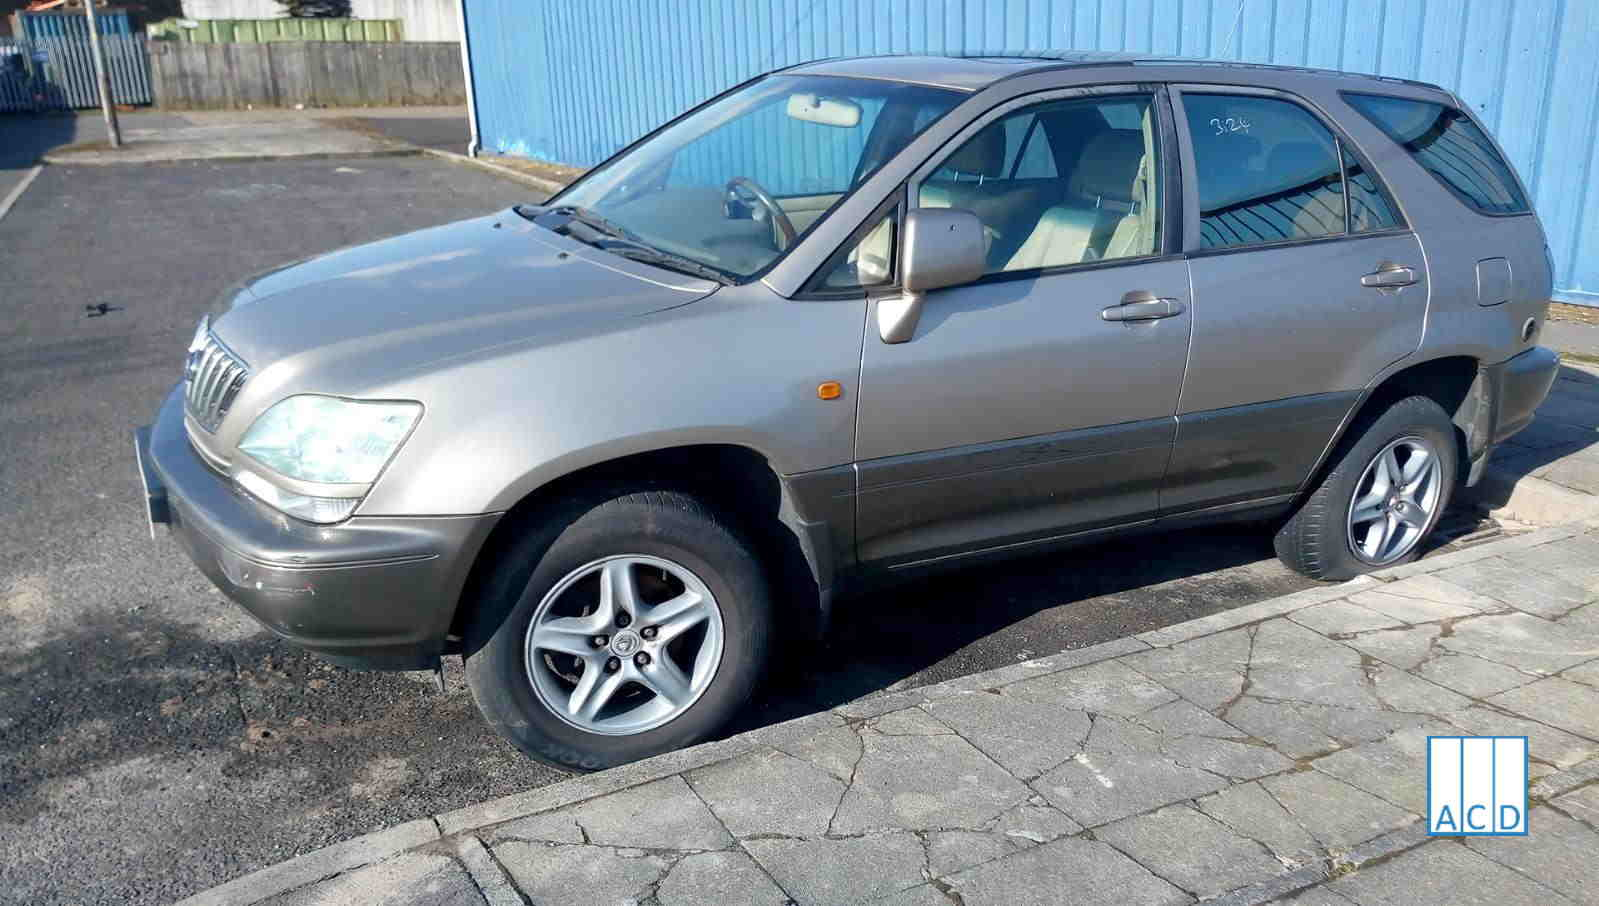 Lexus RX300 3.0L Petrol 4 - Speed Automatic 2002 #3124 01